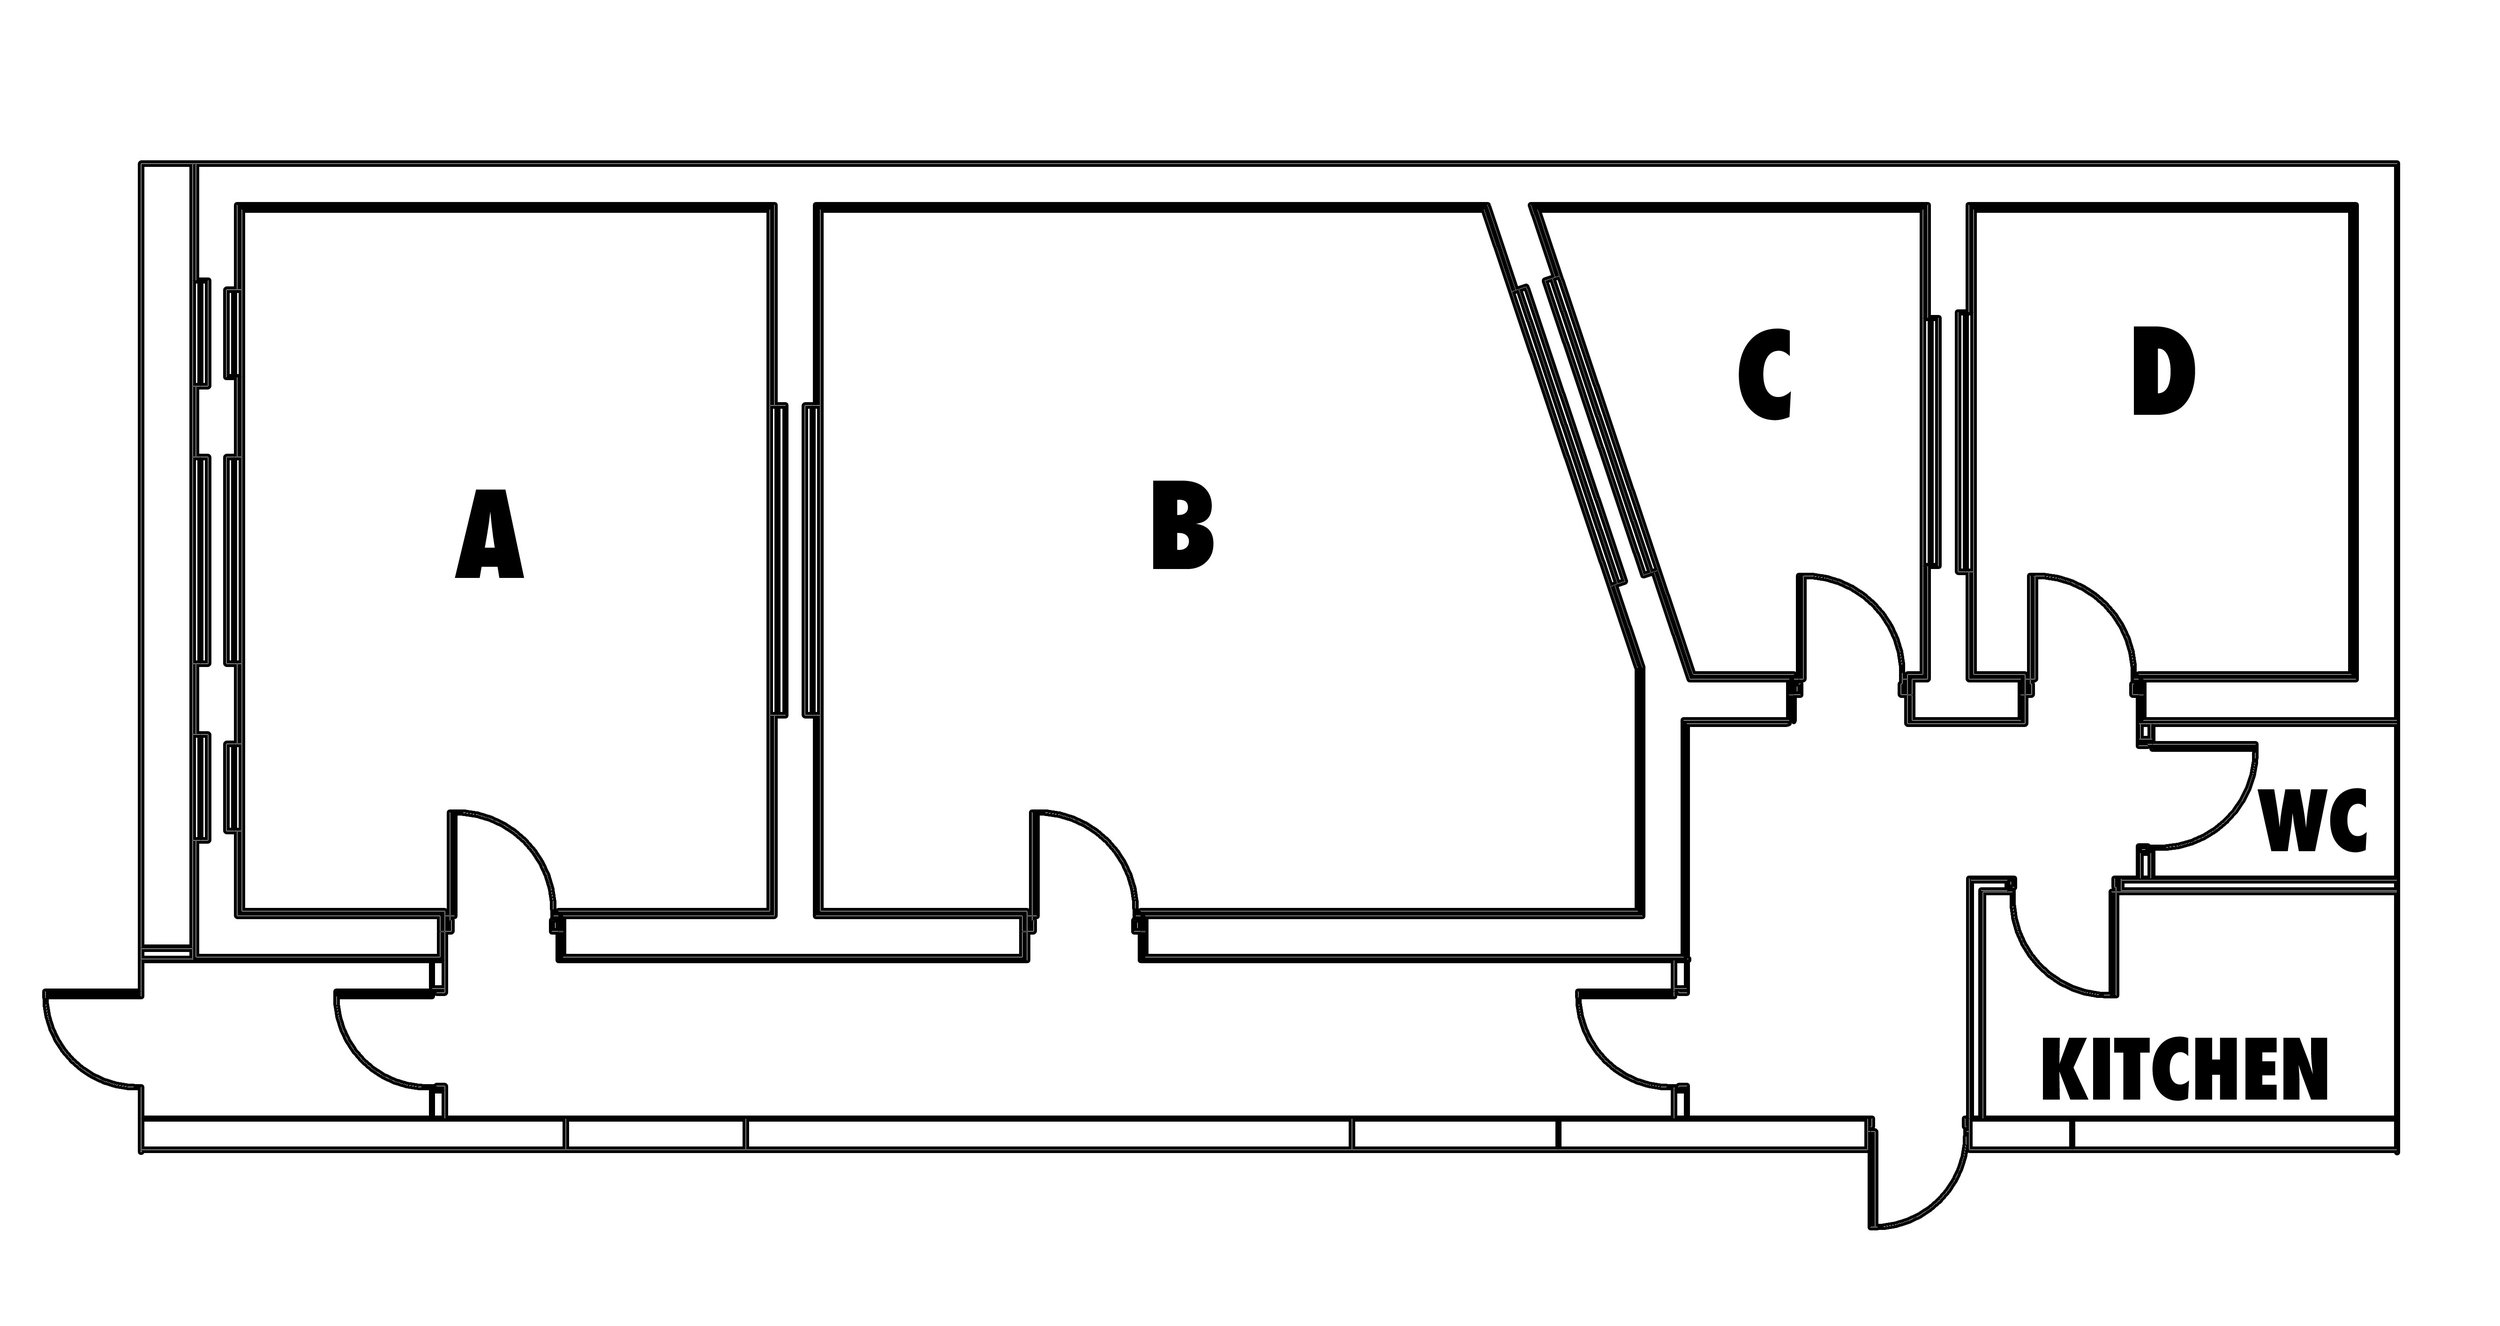 blank site plan top view 100418 v2 copy.jpg